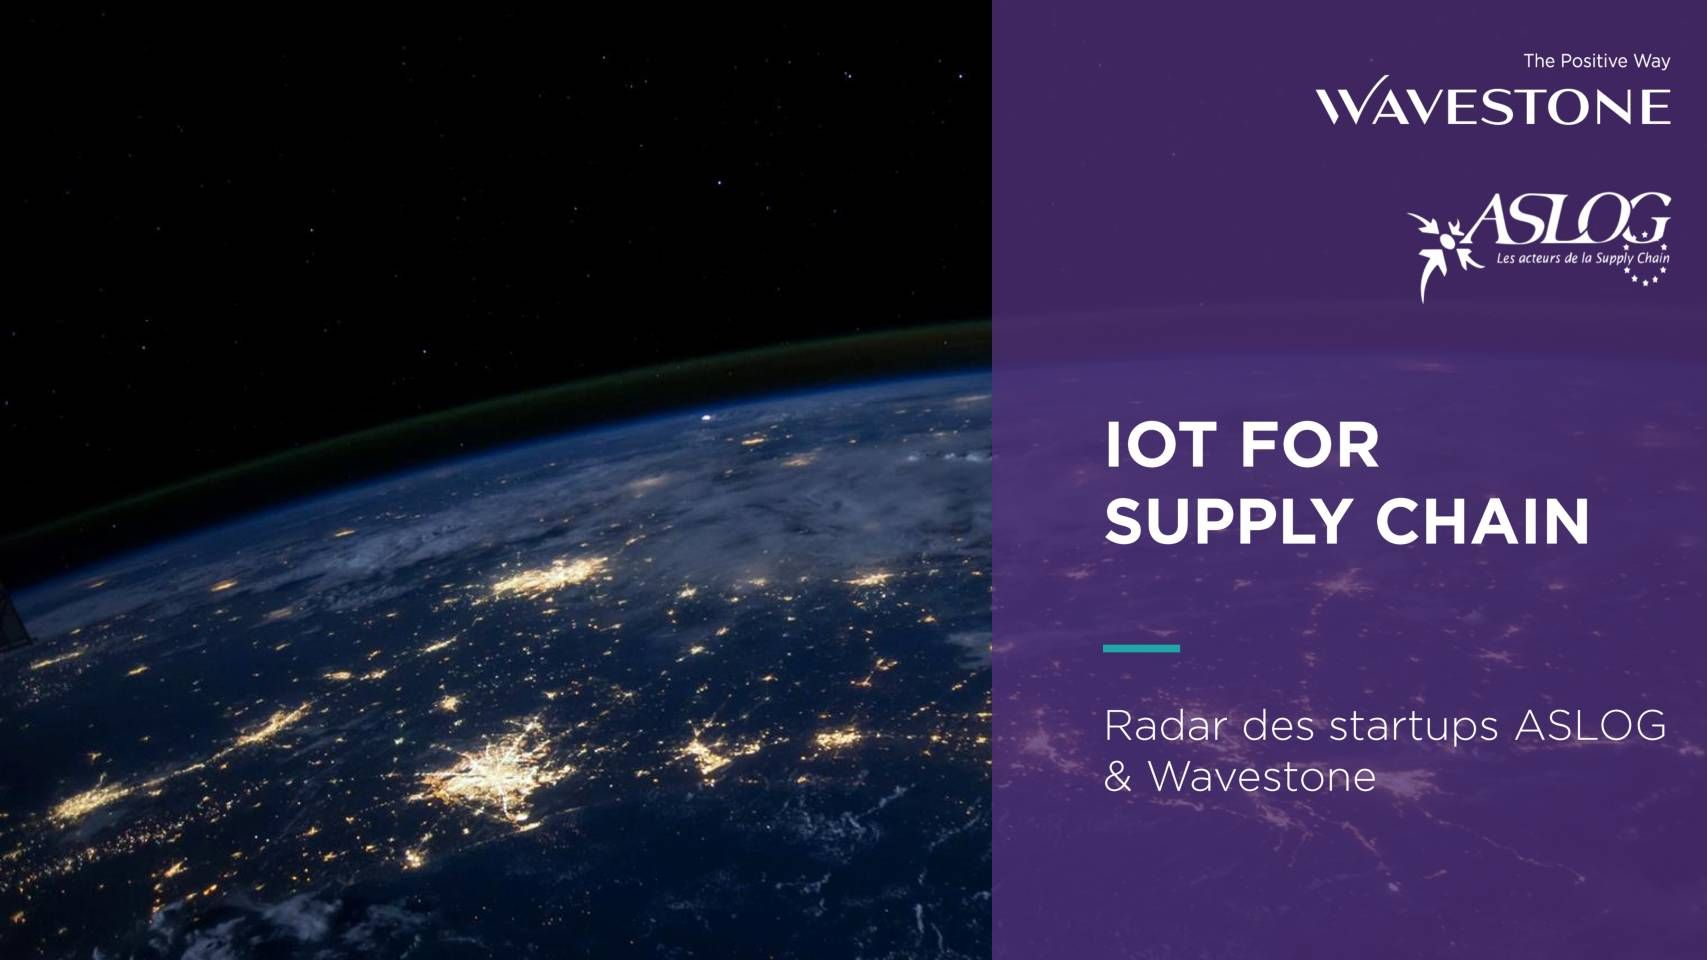 IoT for supply chain